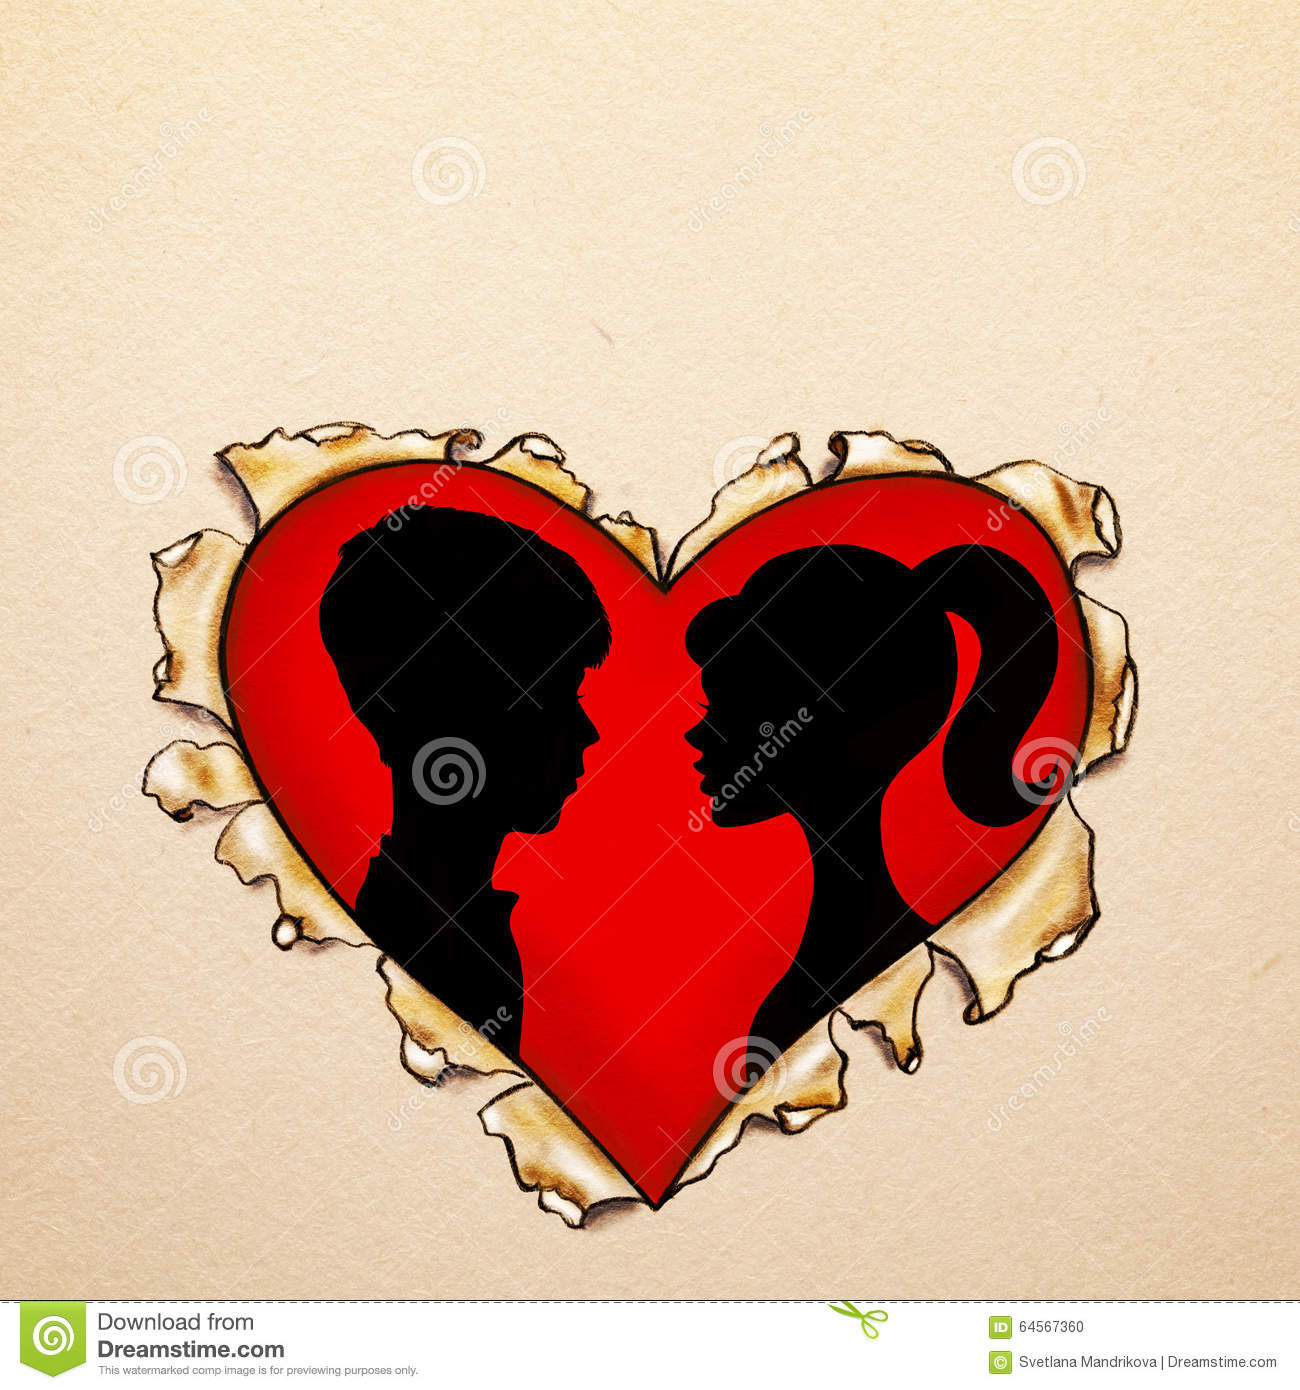 Paper ripped heart with silhouettes